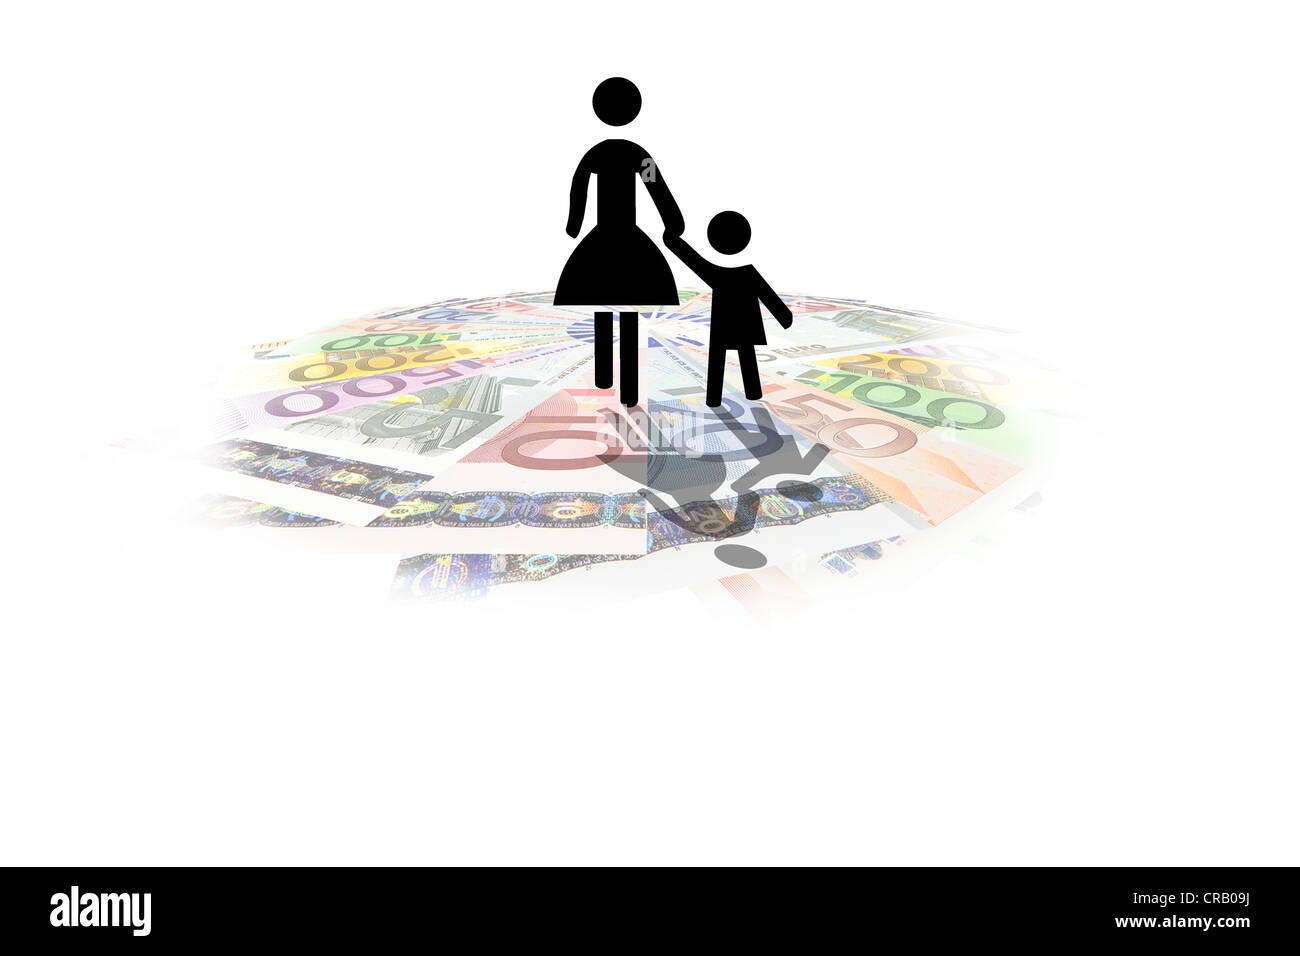 Pictogram of a mother on euro notes, symbolic image for an expensive lifestyle, cost of living for single mothers - Stock Image